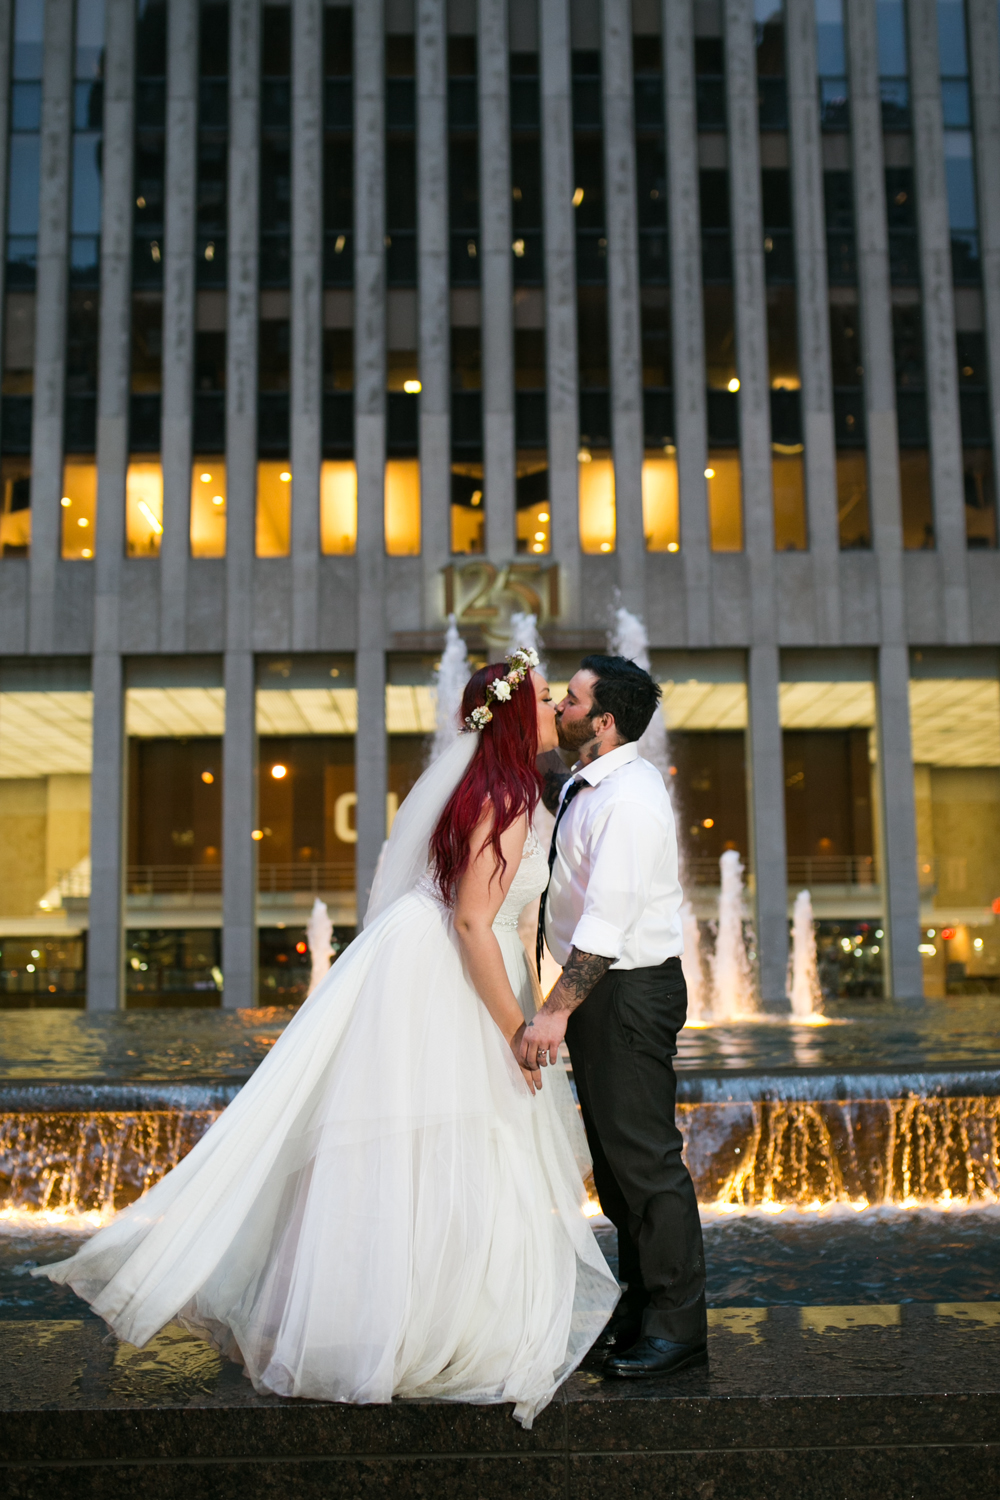 Wedding Photos at Night in NYC